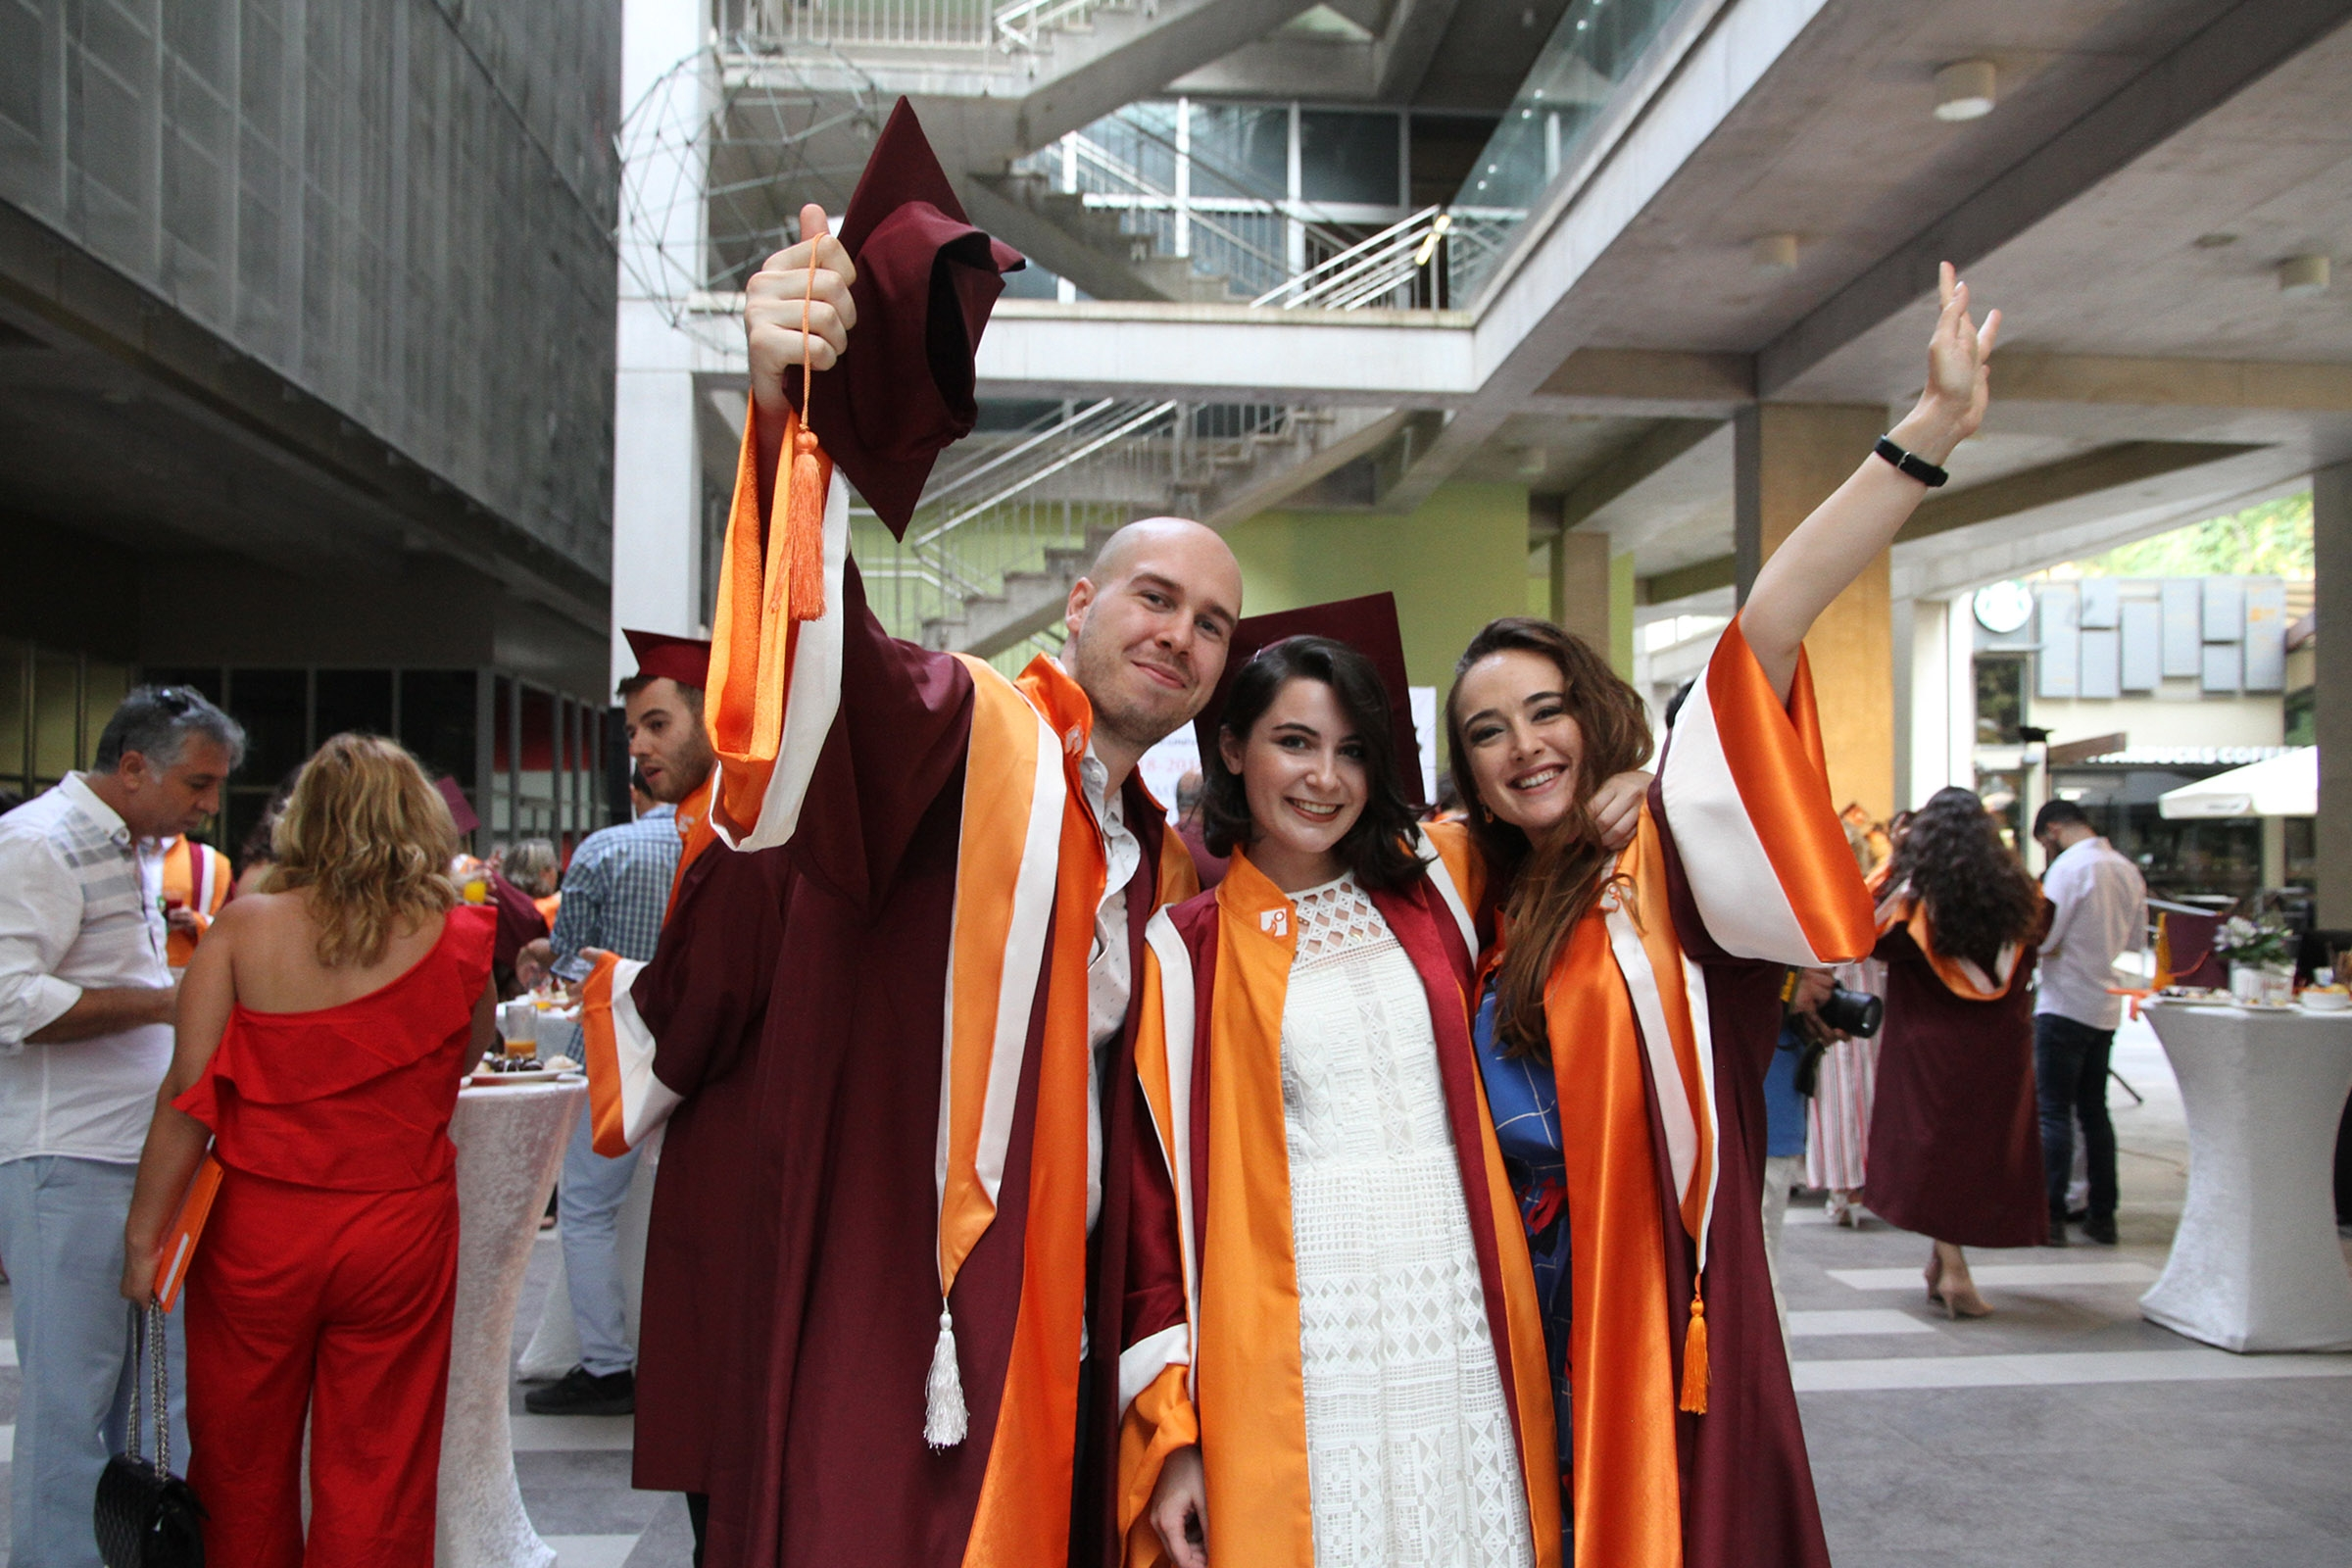 Enthusiastic graduation at Izmir University of Economics